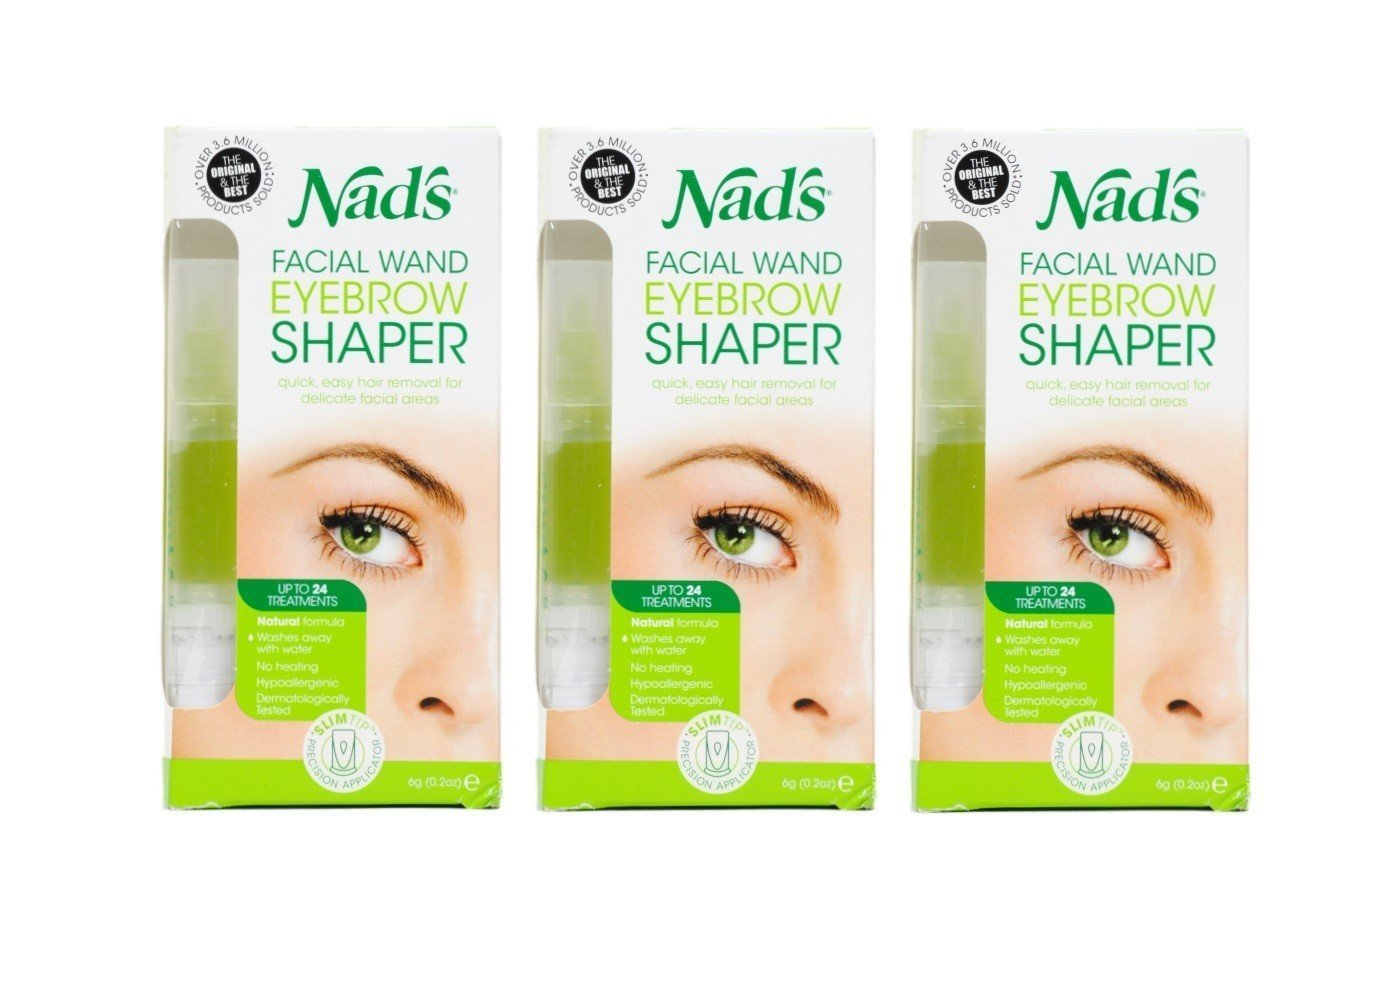 Buy Nads Eyebrow Shaper Facial Wand In Cheap Price On Alibaba